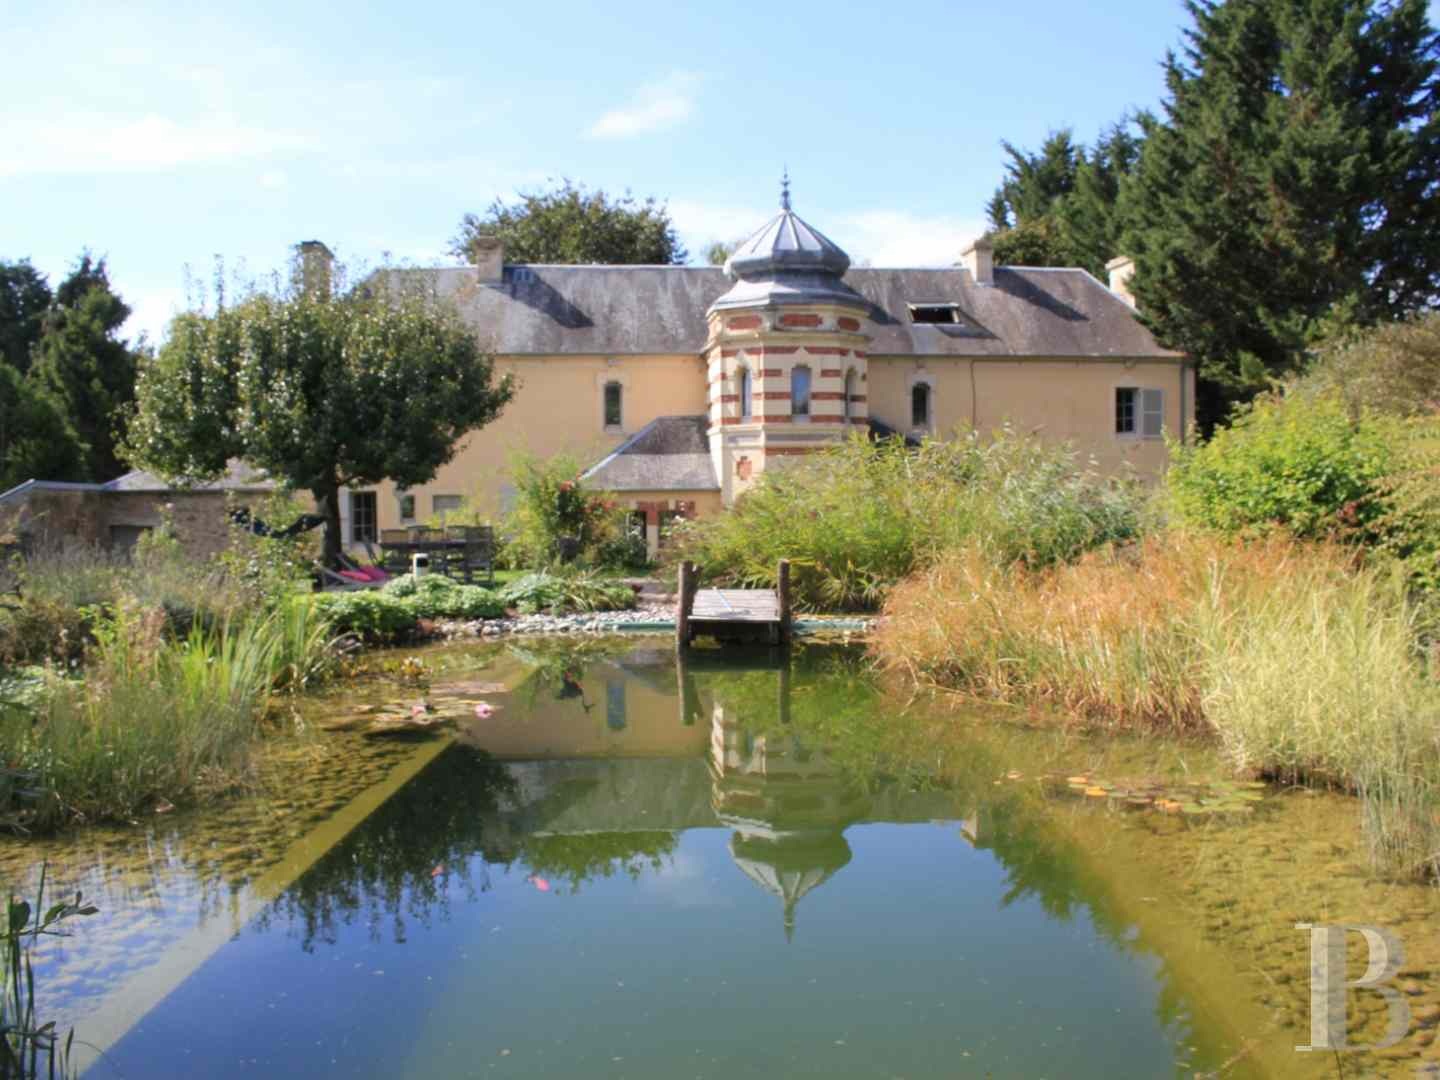 manoirs a vendre basse normandie manoir propriete - 1 zoom